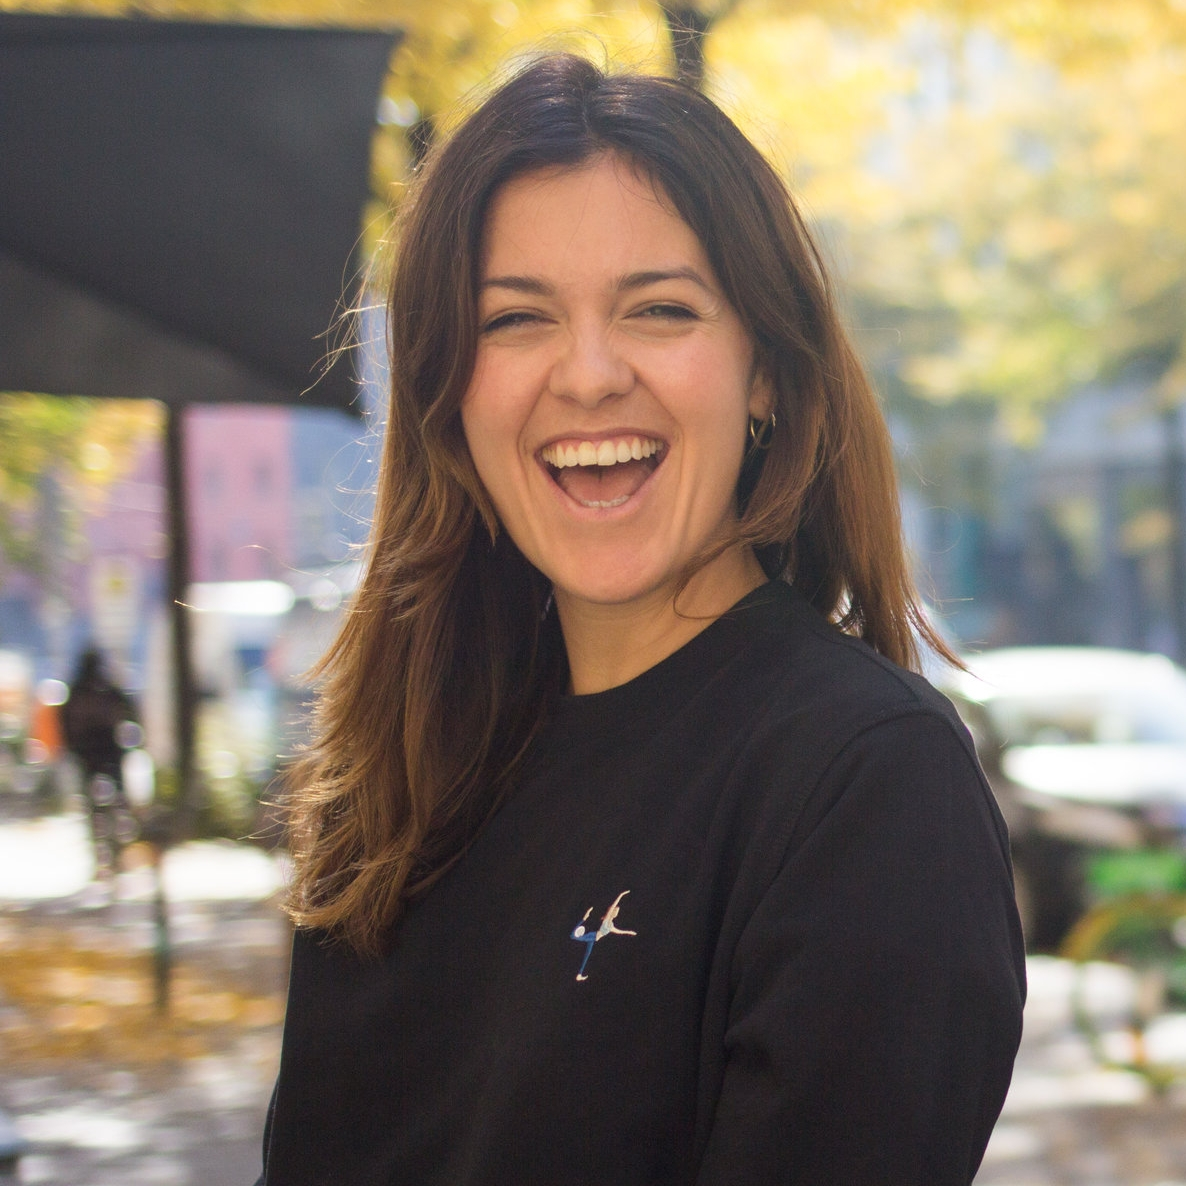 MEET MOLLY… - Our Studio Manager Molly is our one and only Kiwi darling, who brings her positive energy and attitude wherever she goes! Read on to find out the secrets to her everlasting energy…